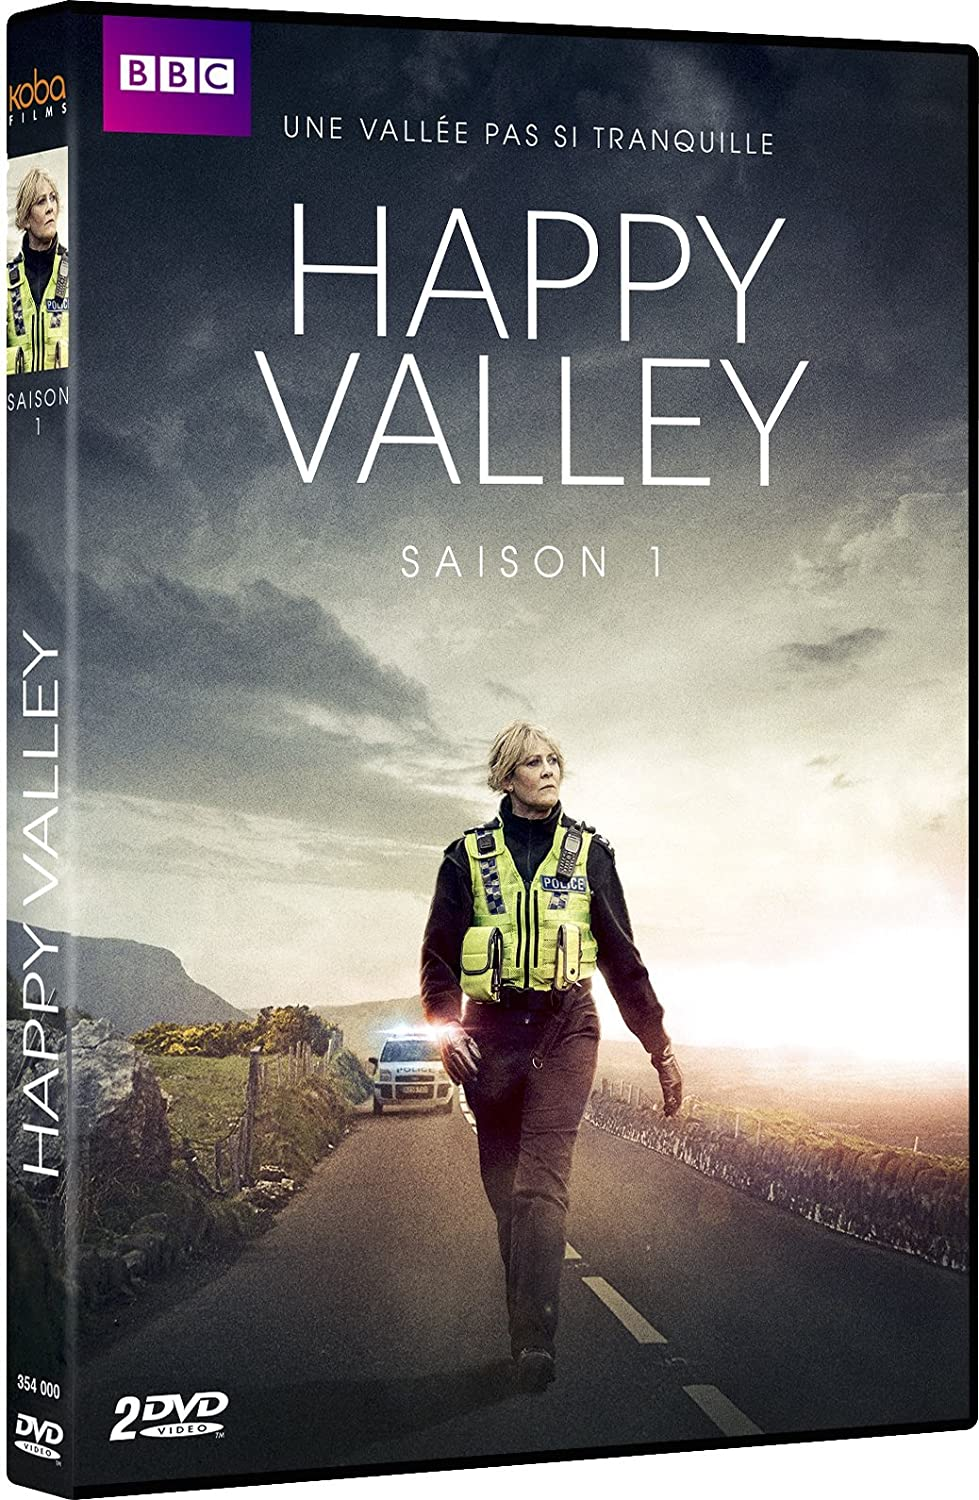 Happy Valley BBC 2014, saison 1 - Page 3 81W6M2rZdVL._SL1500_